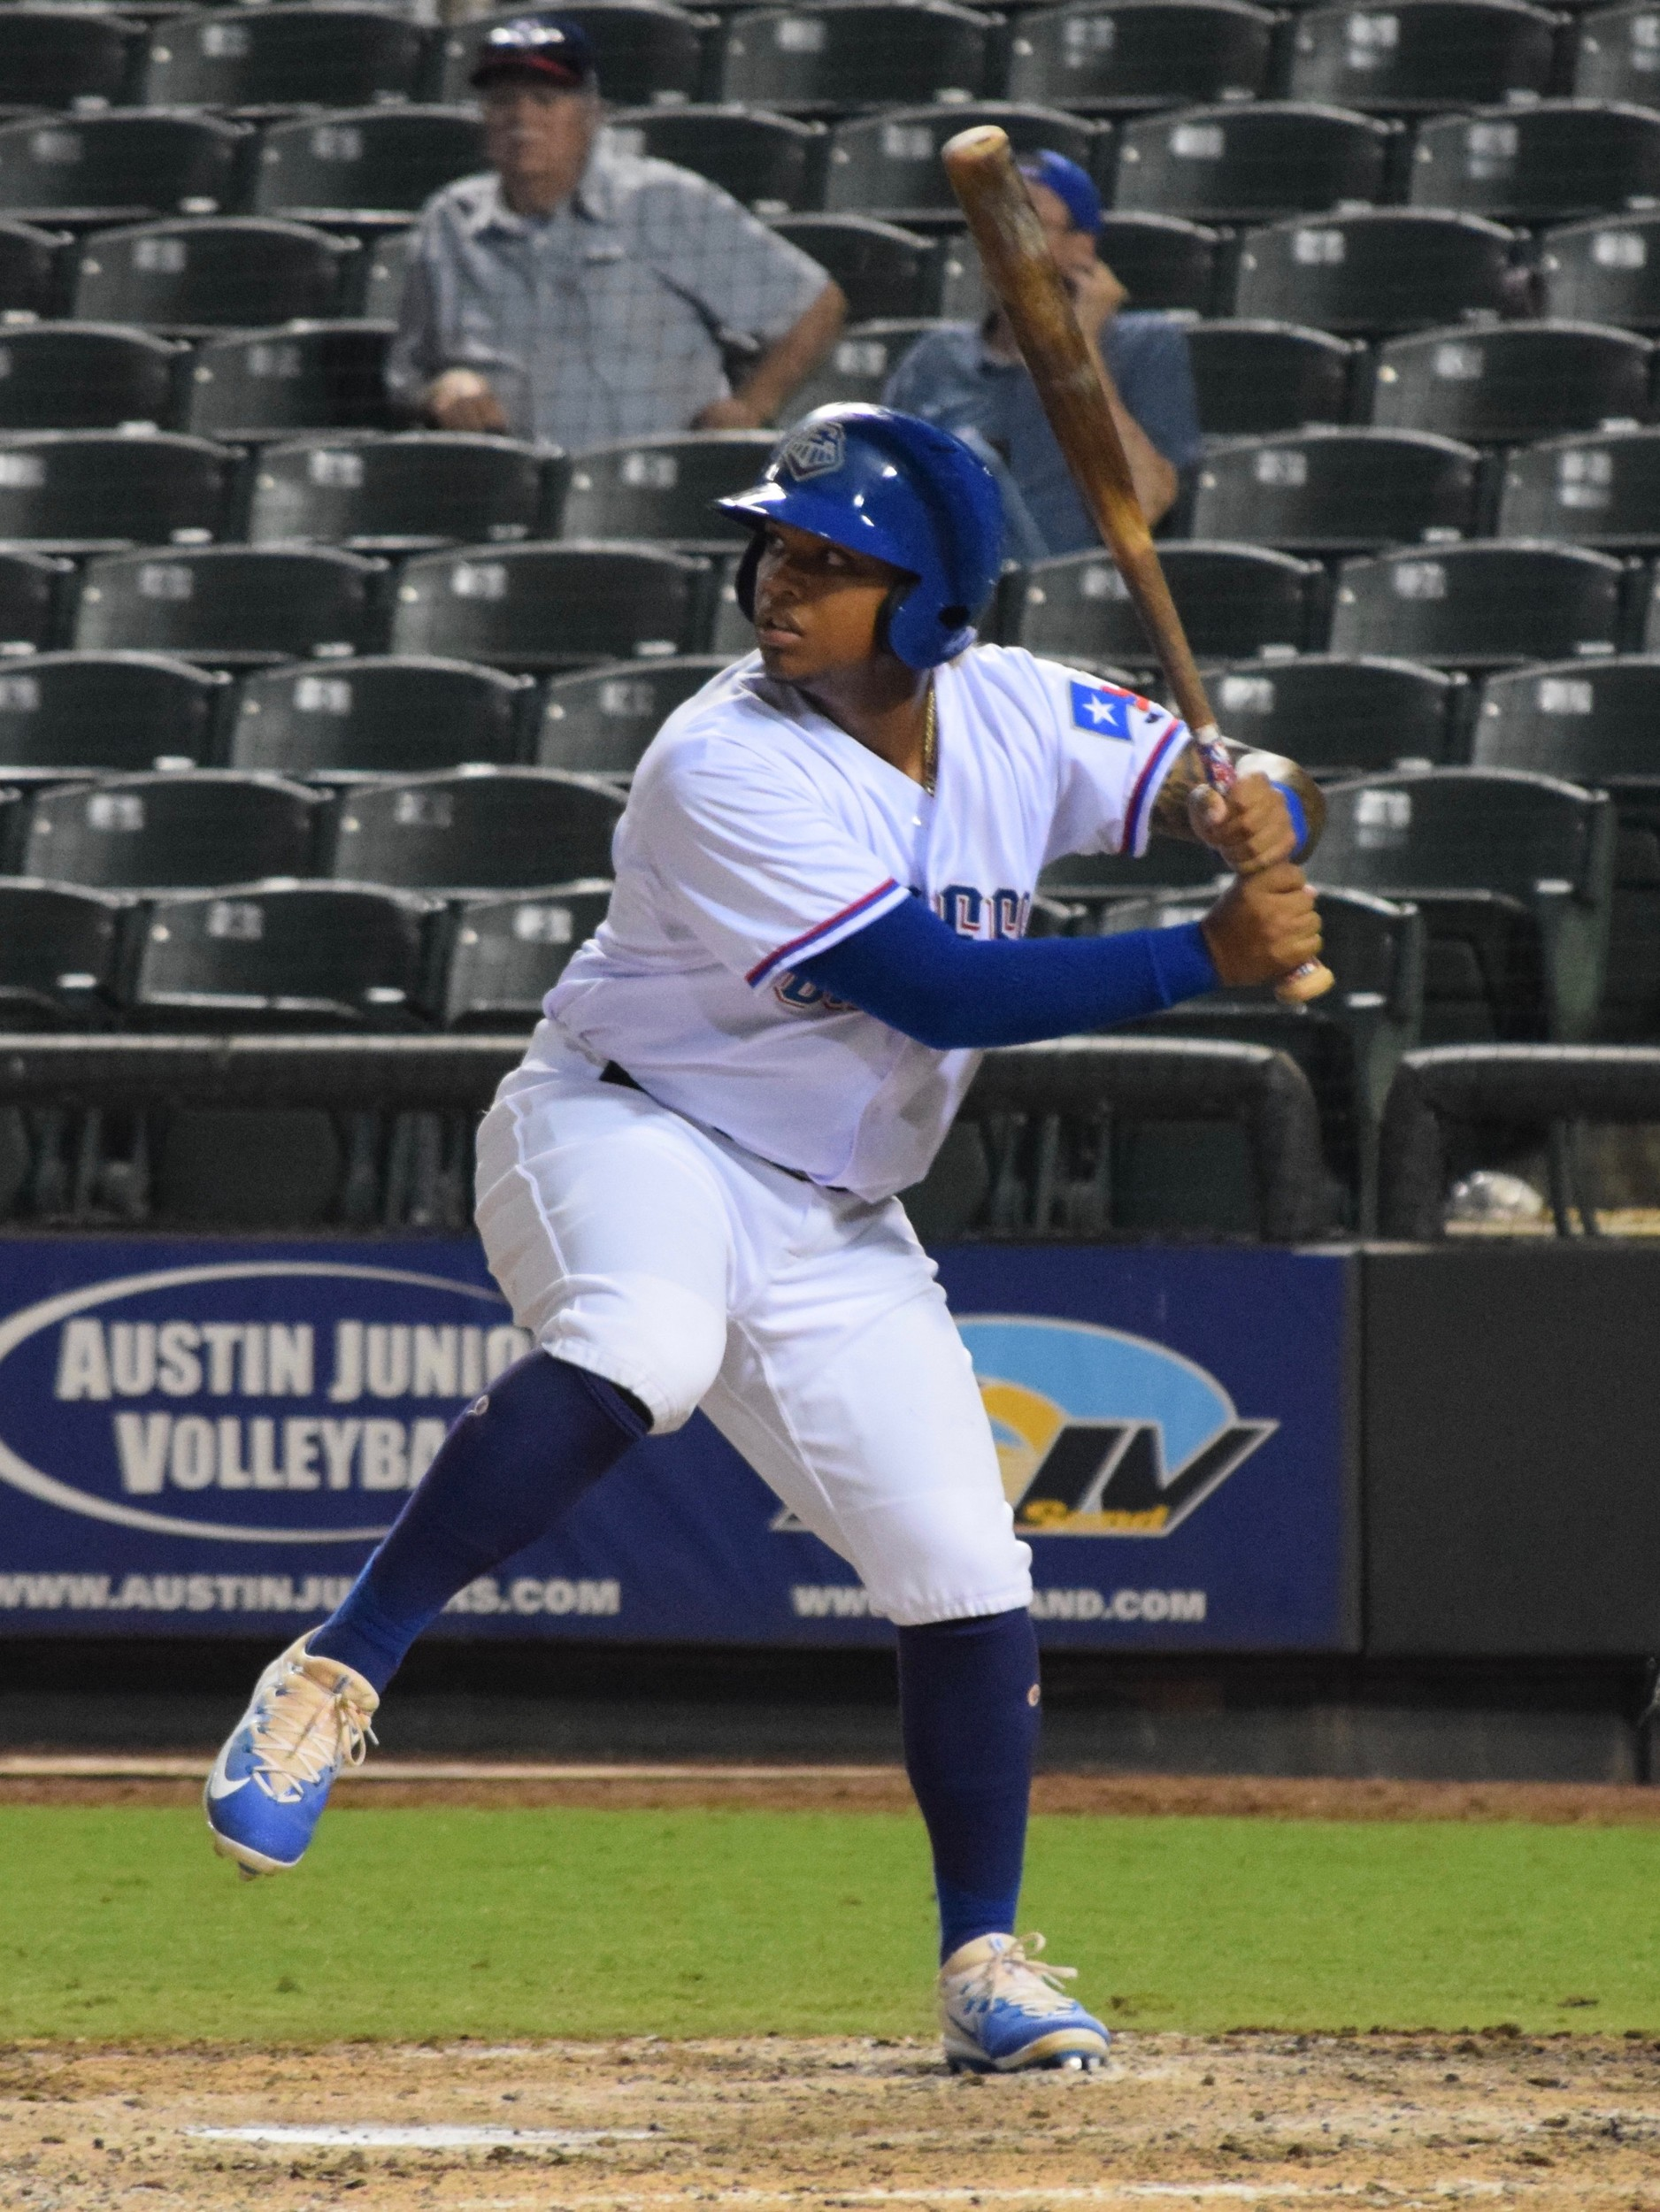 Willie Calhoun hit his first home run since joining the Express and Round Rock beat the Albuquerque Isotopes 6-1 on Thursday night.